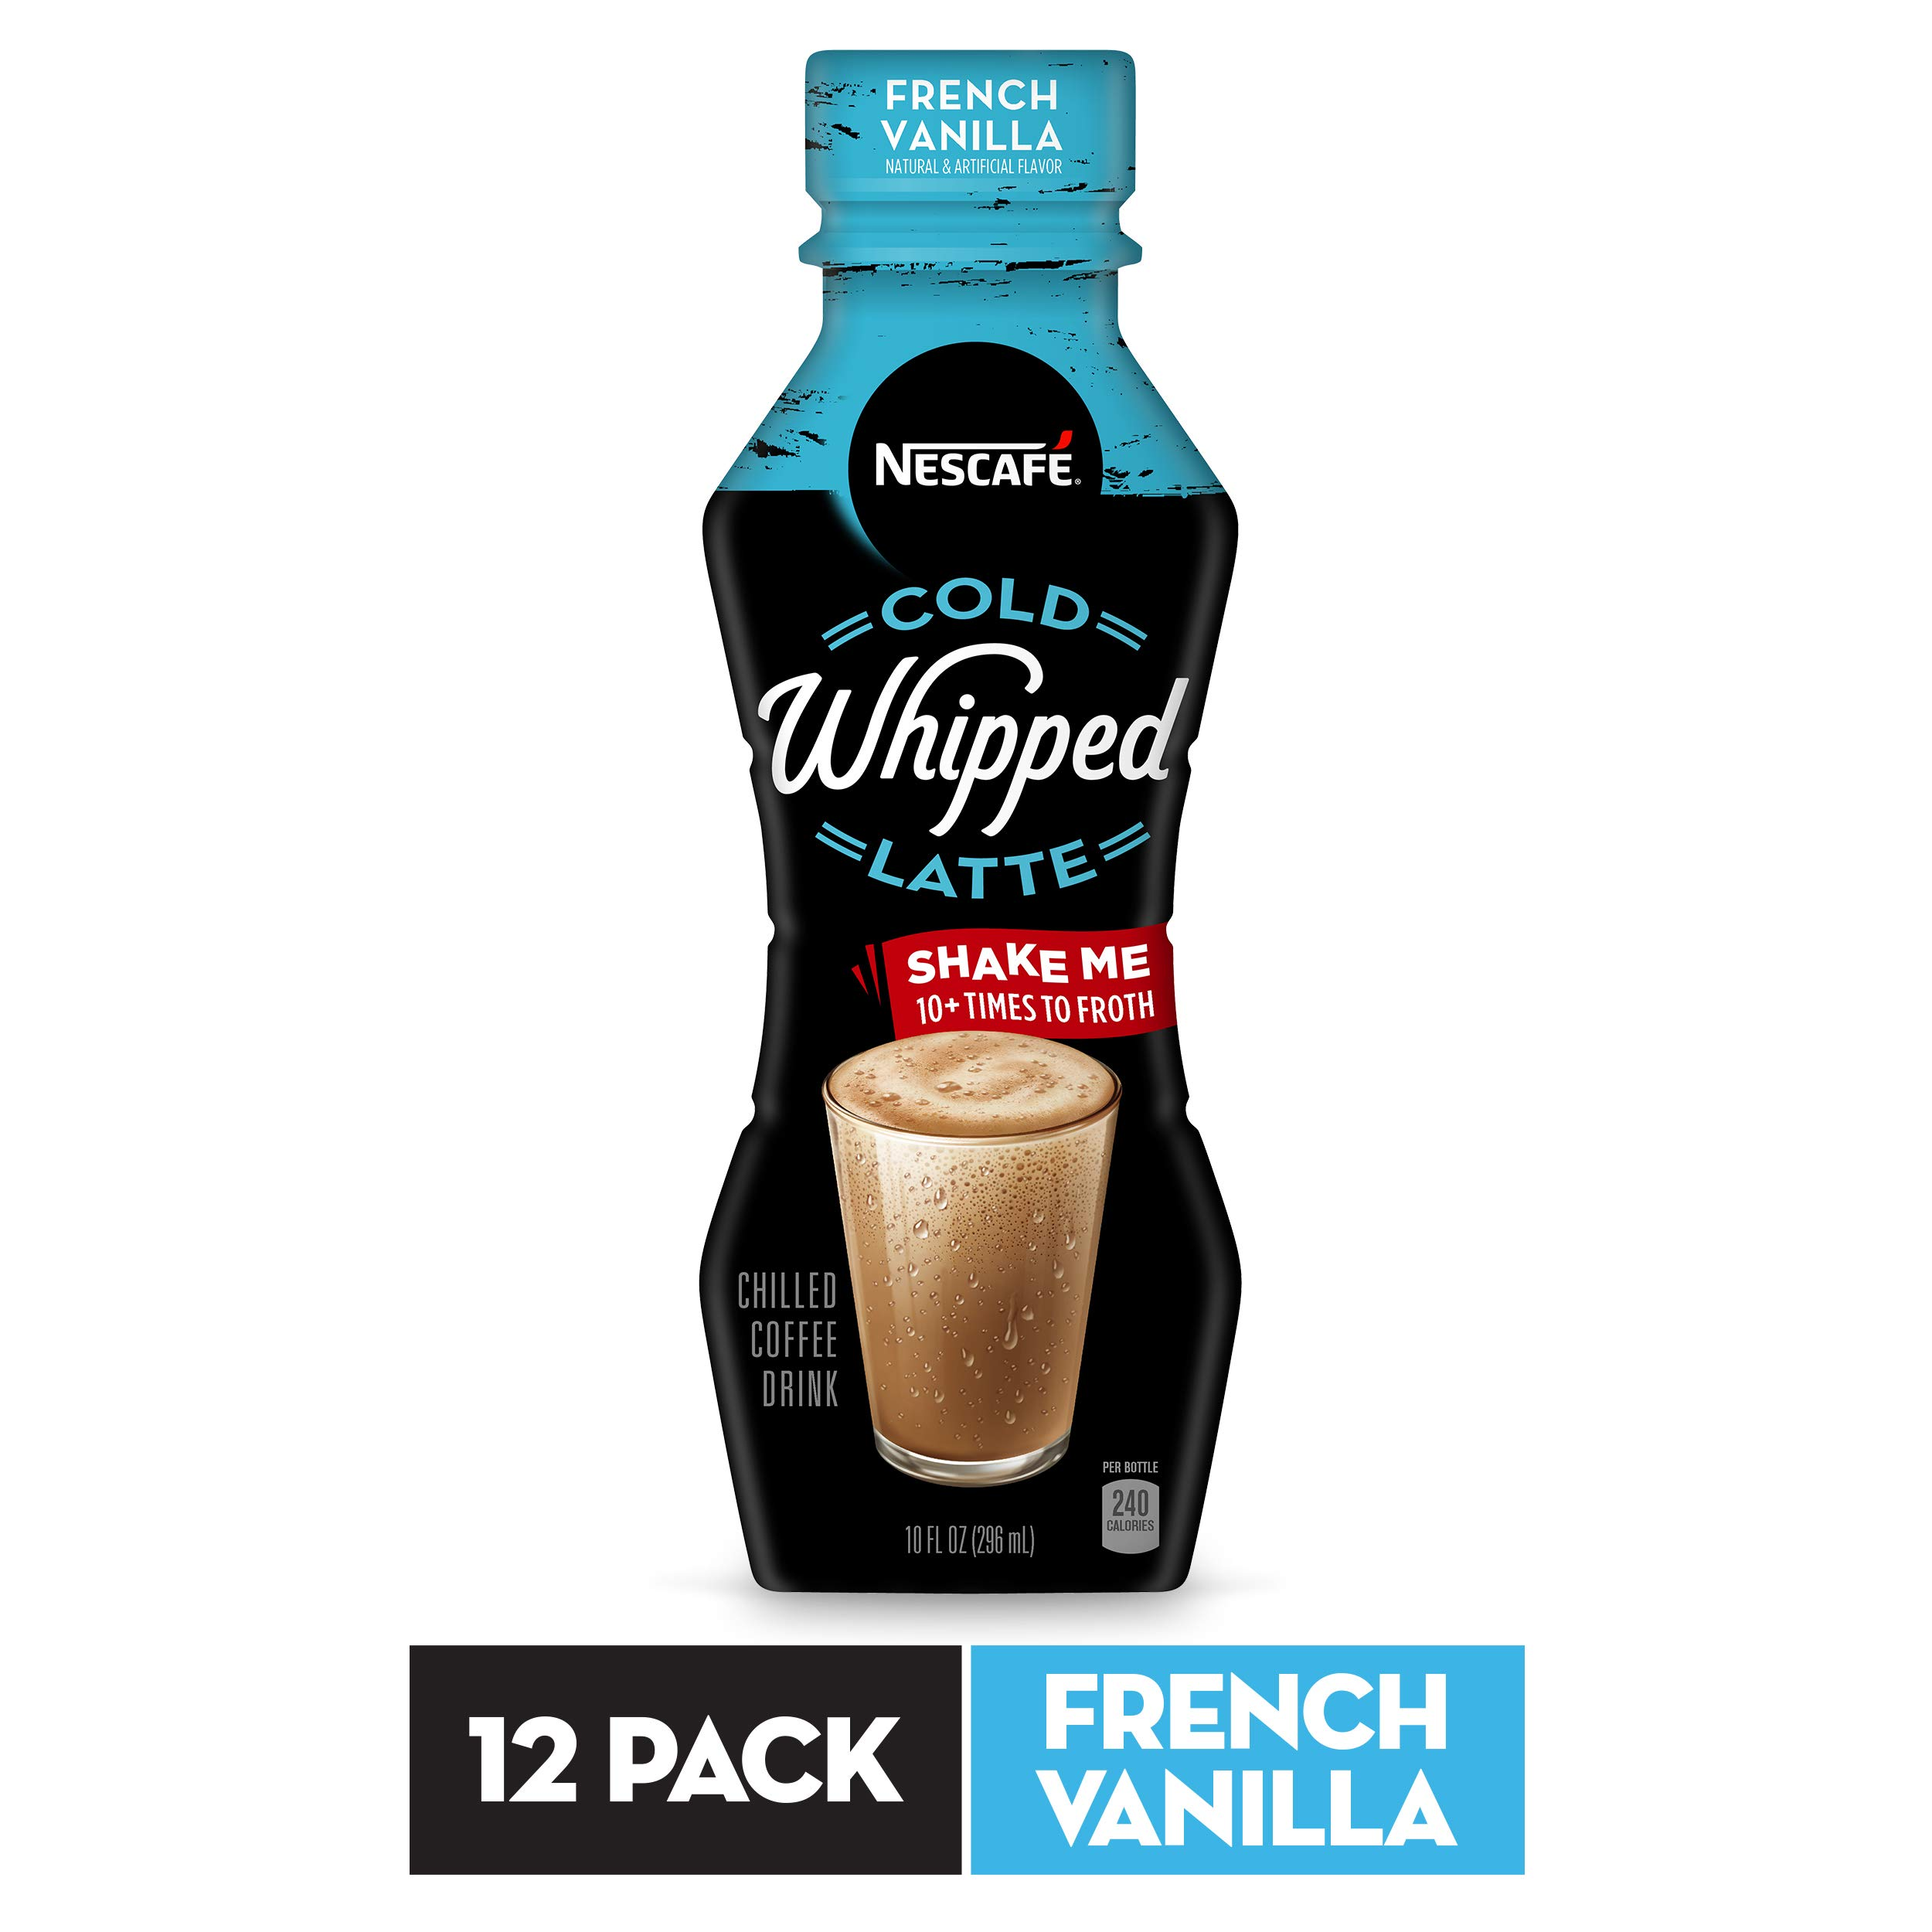 NESCAFÉ Cold Whipped Latte, Ready to Drink Chilled Coffee Drink, French Vanilla, 10 FL OZ, 12 Bottles | Premium Roasted Coffee Drink with Latte Froth